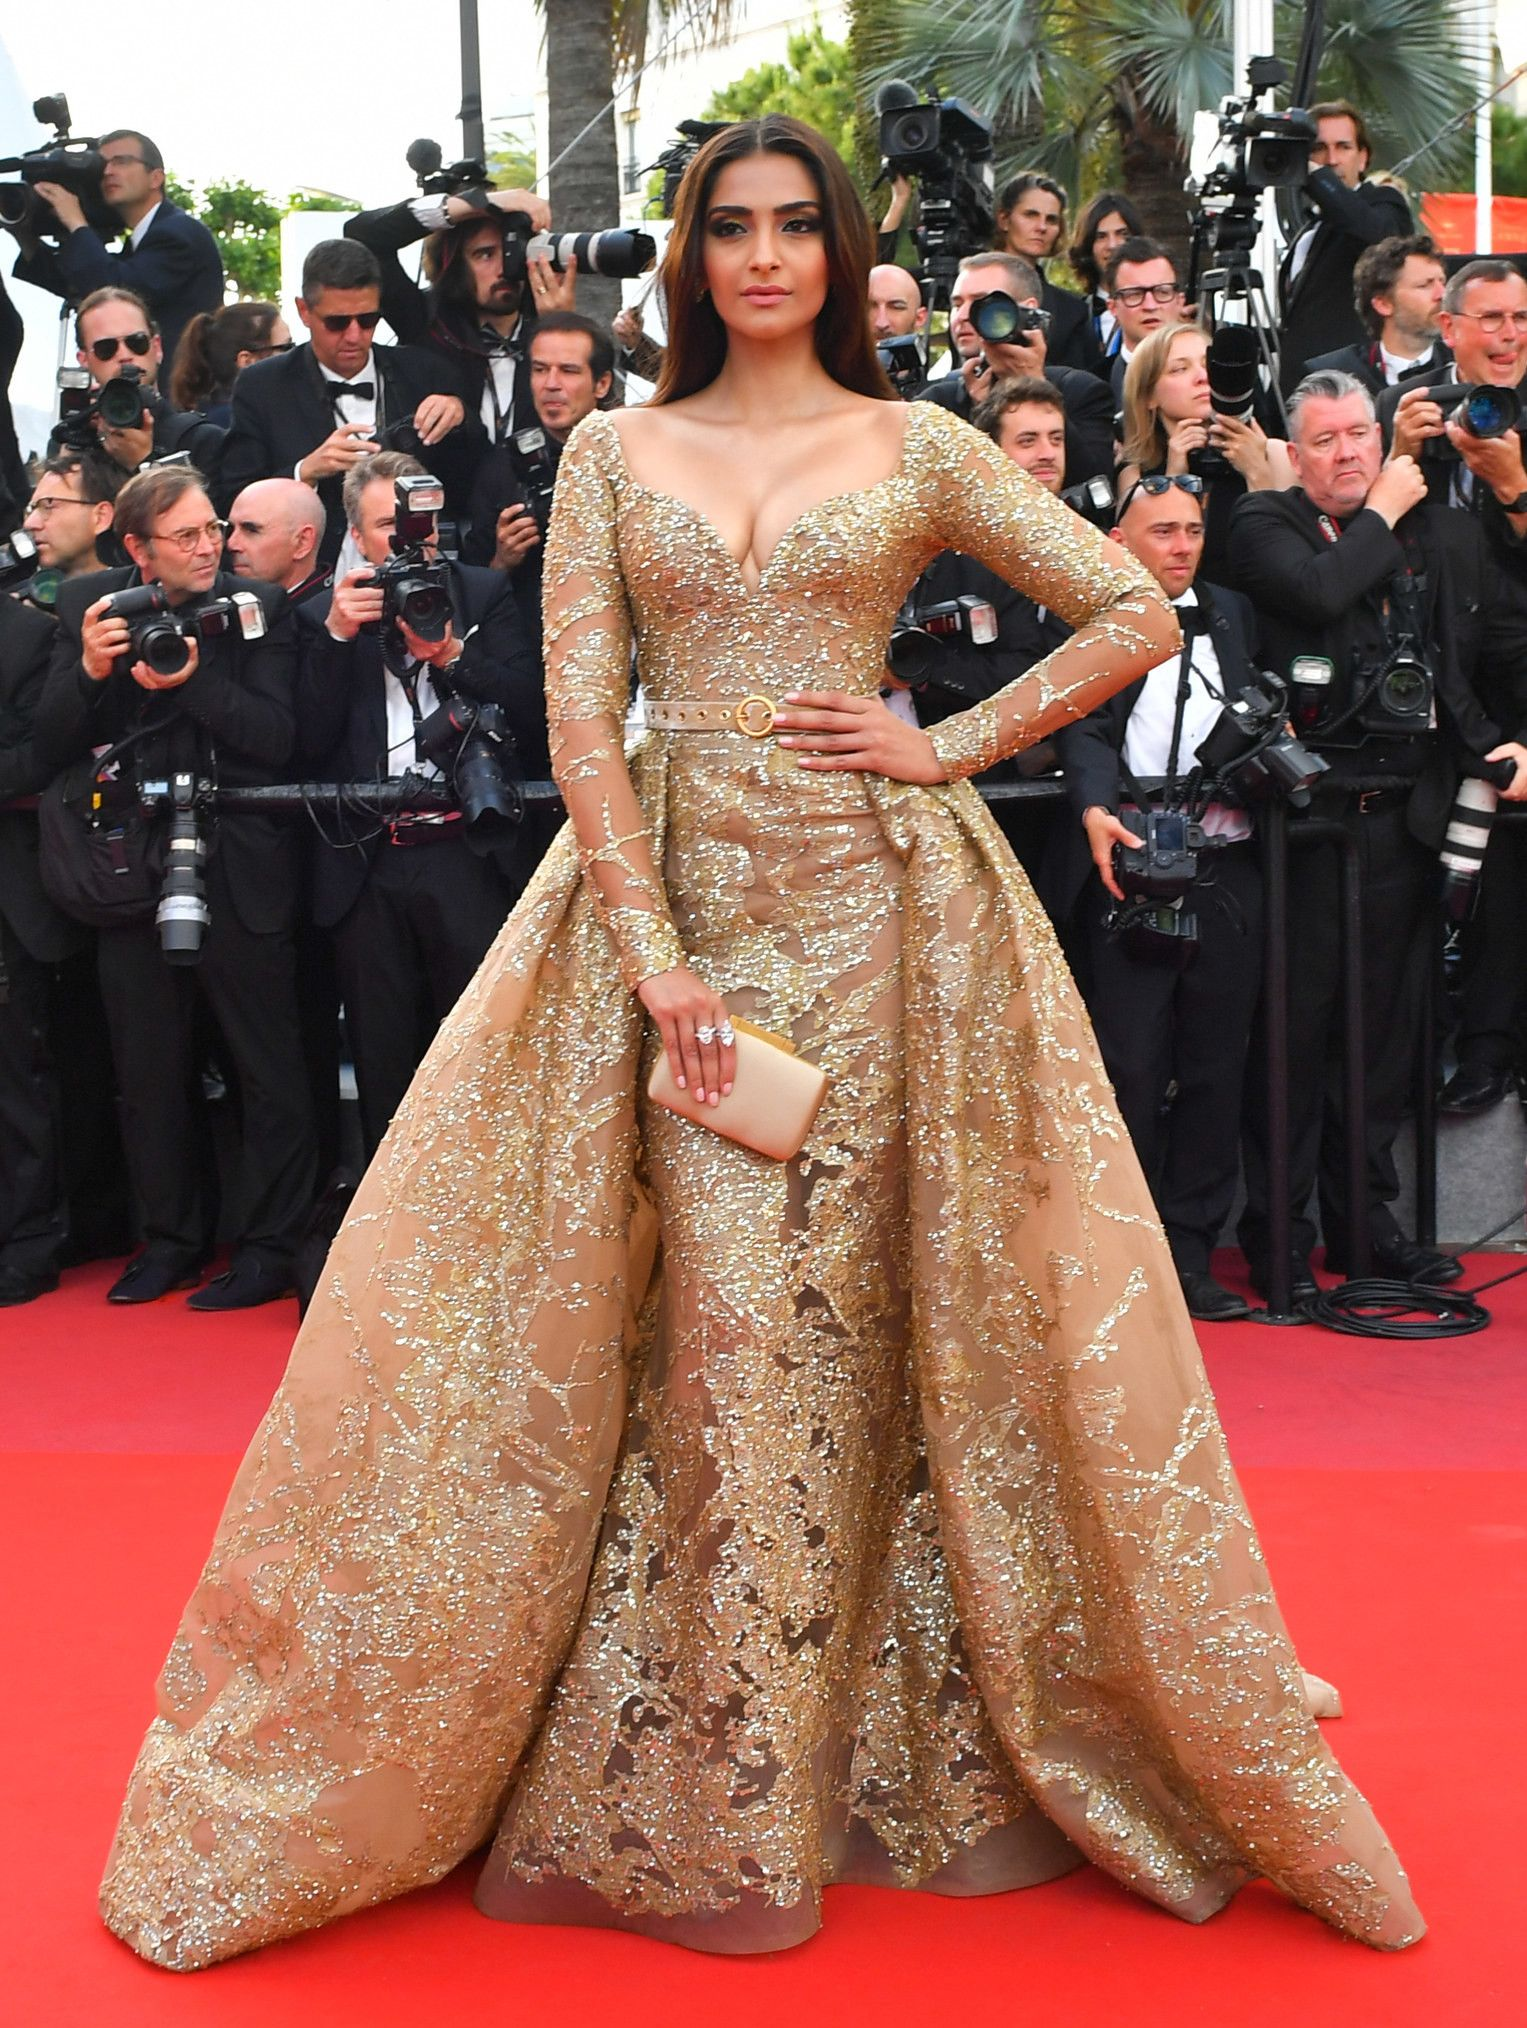 photos of sonam kapoor walking the cannes film festival red